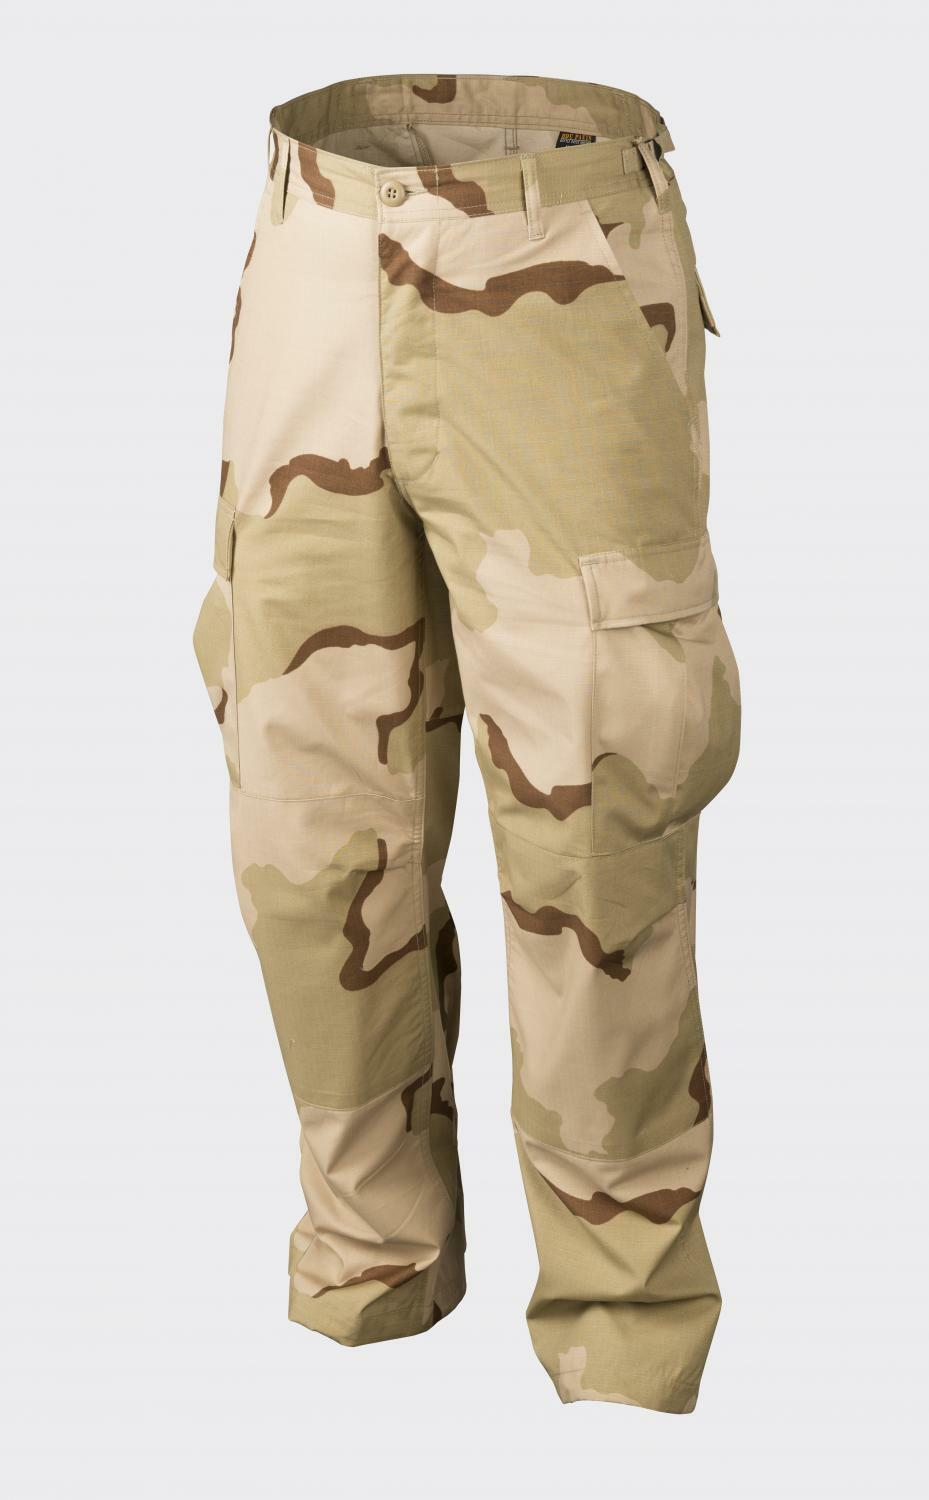 Helicon Tex Us 3 color Desert Dcu Bdu Army XL Long